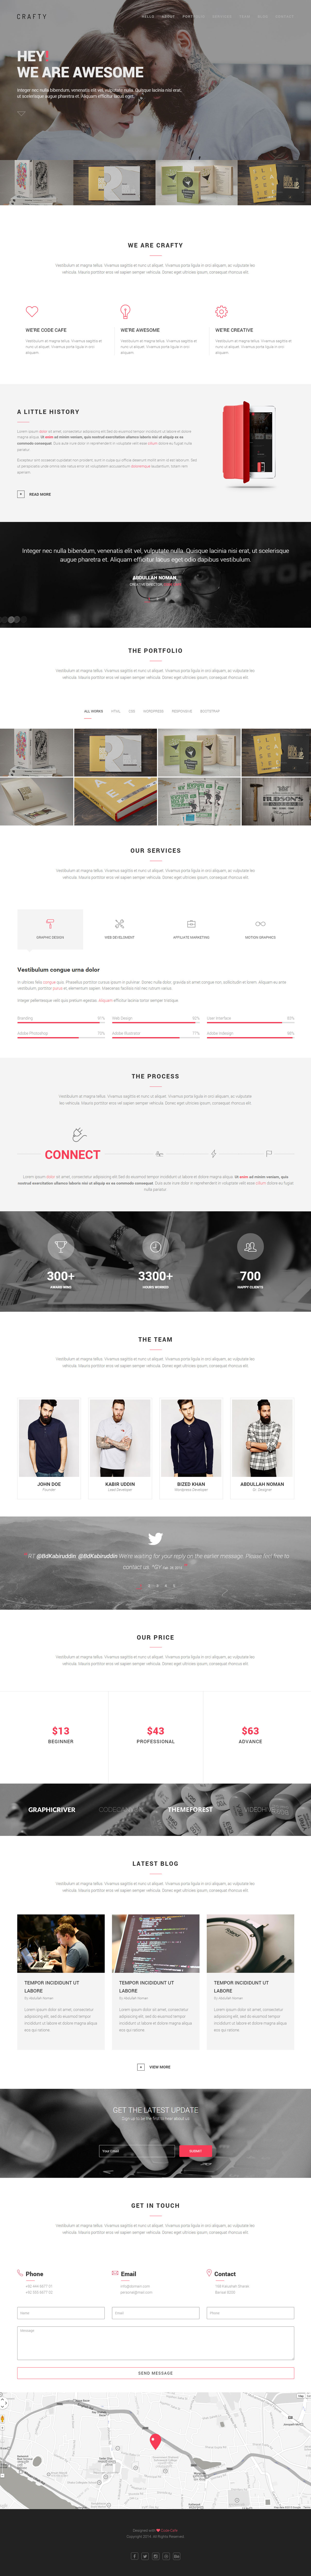 'Crafty' is a new One Page HTML template perfectly suited for digital agencies or freelancers. There are two main light and dark concepts - each with header options for text slider, image slideshow and video background. Other than the Scrolljacking there are some good features including a responsive design, Twitter Feed, portfolio filter, pre-loader and a working contact form.